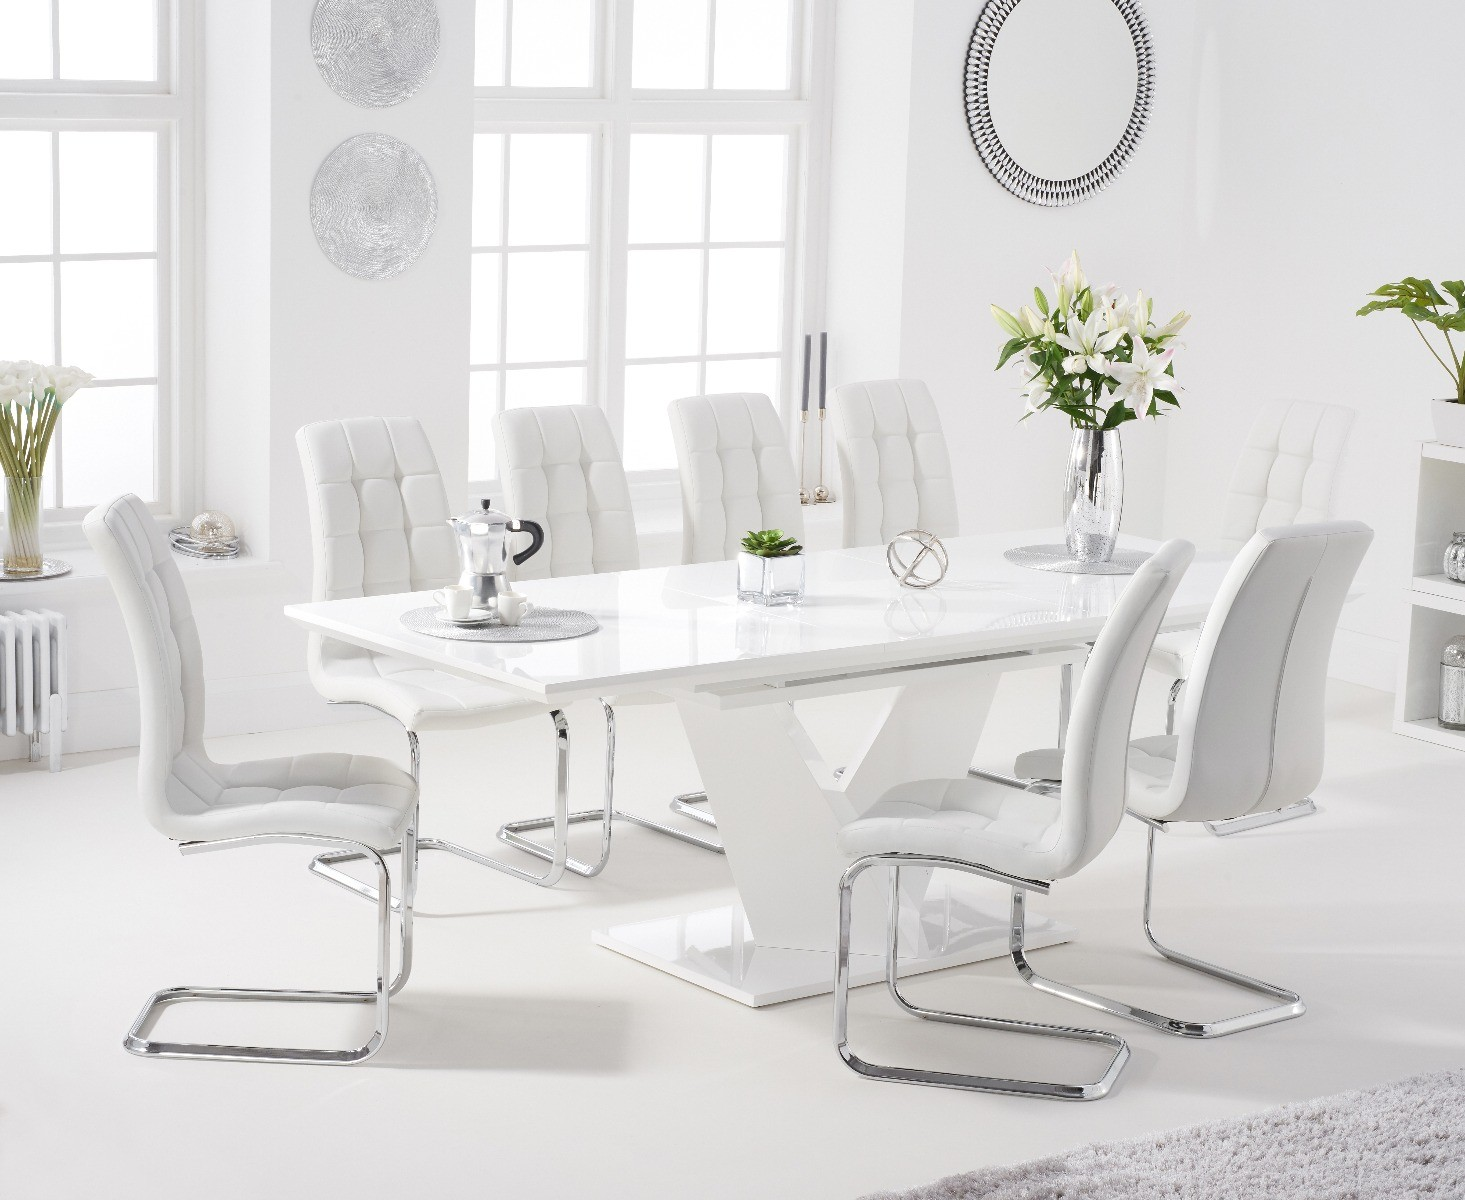 An image of Halo 160cm White High Gloss Extending Dining Table with Lorin Faux Leather Chair...